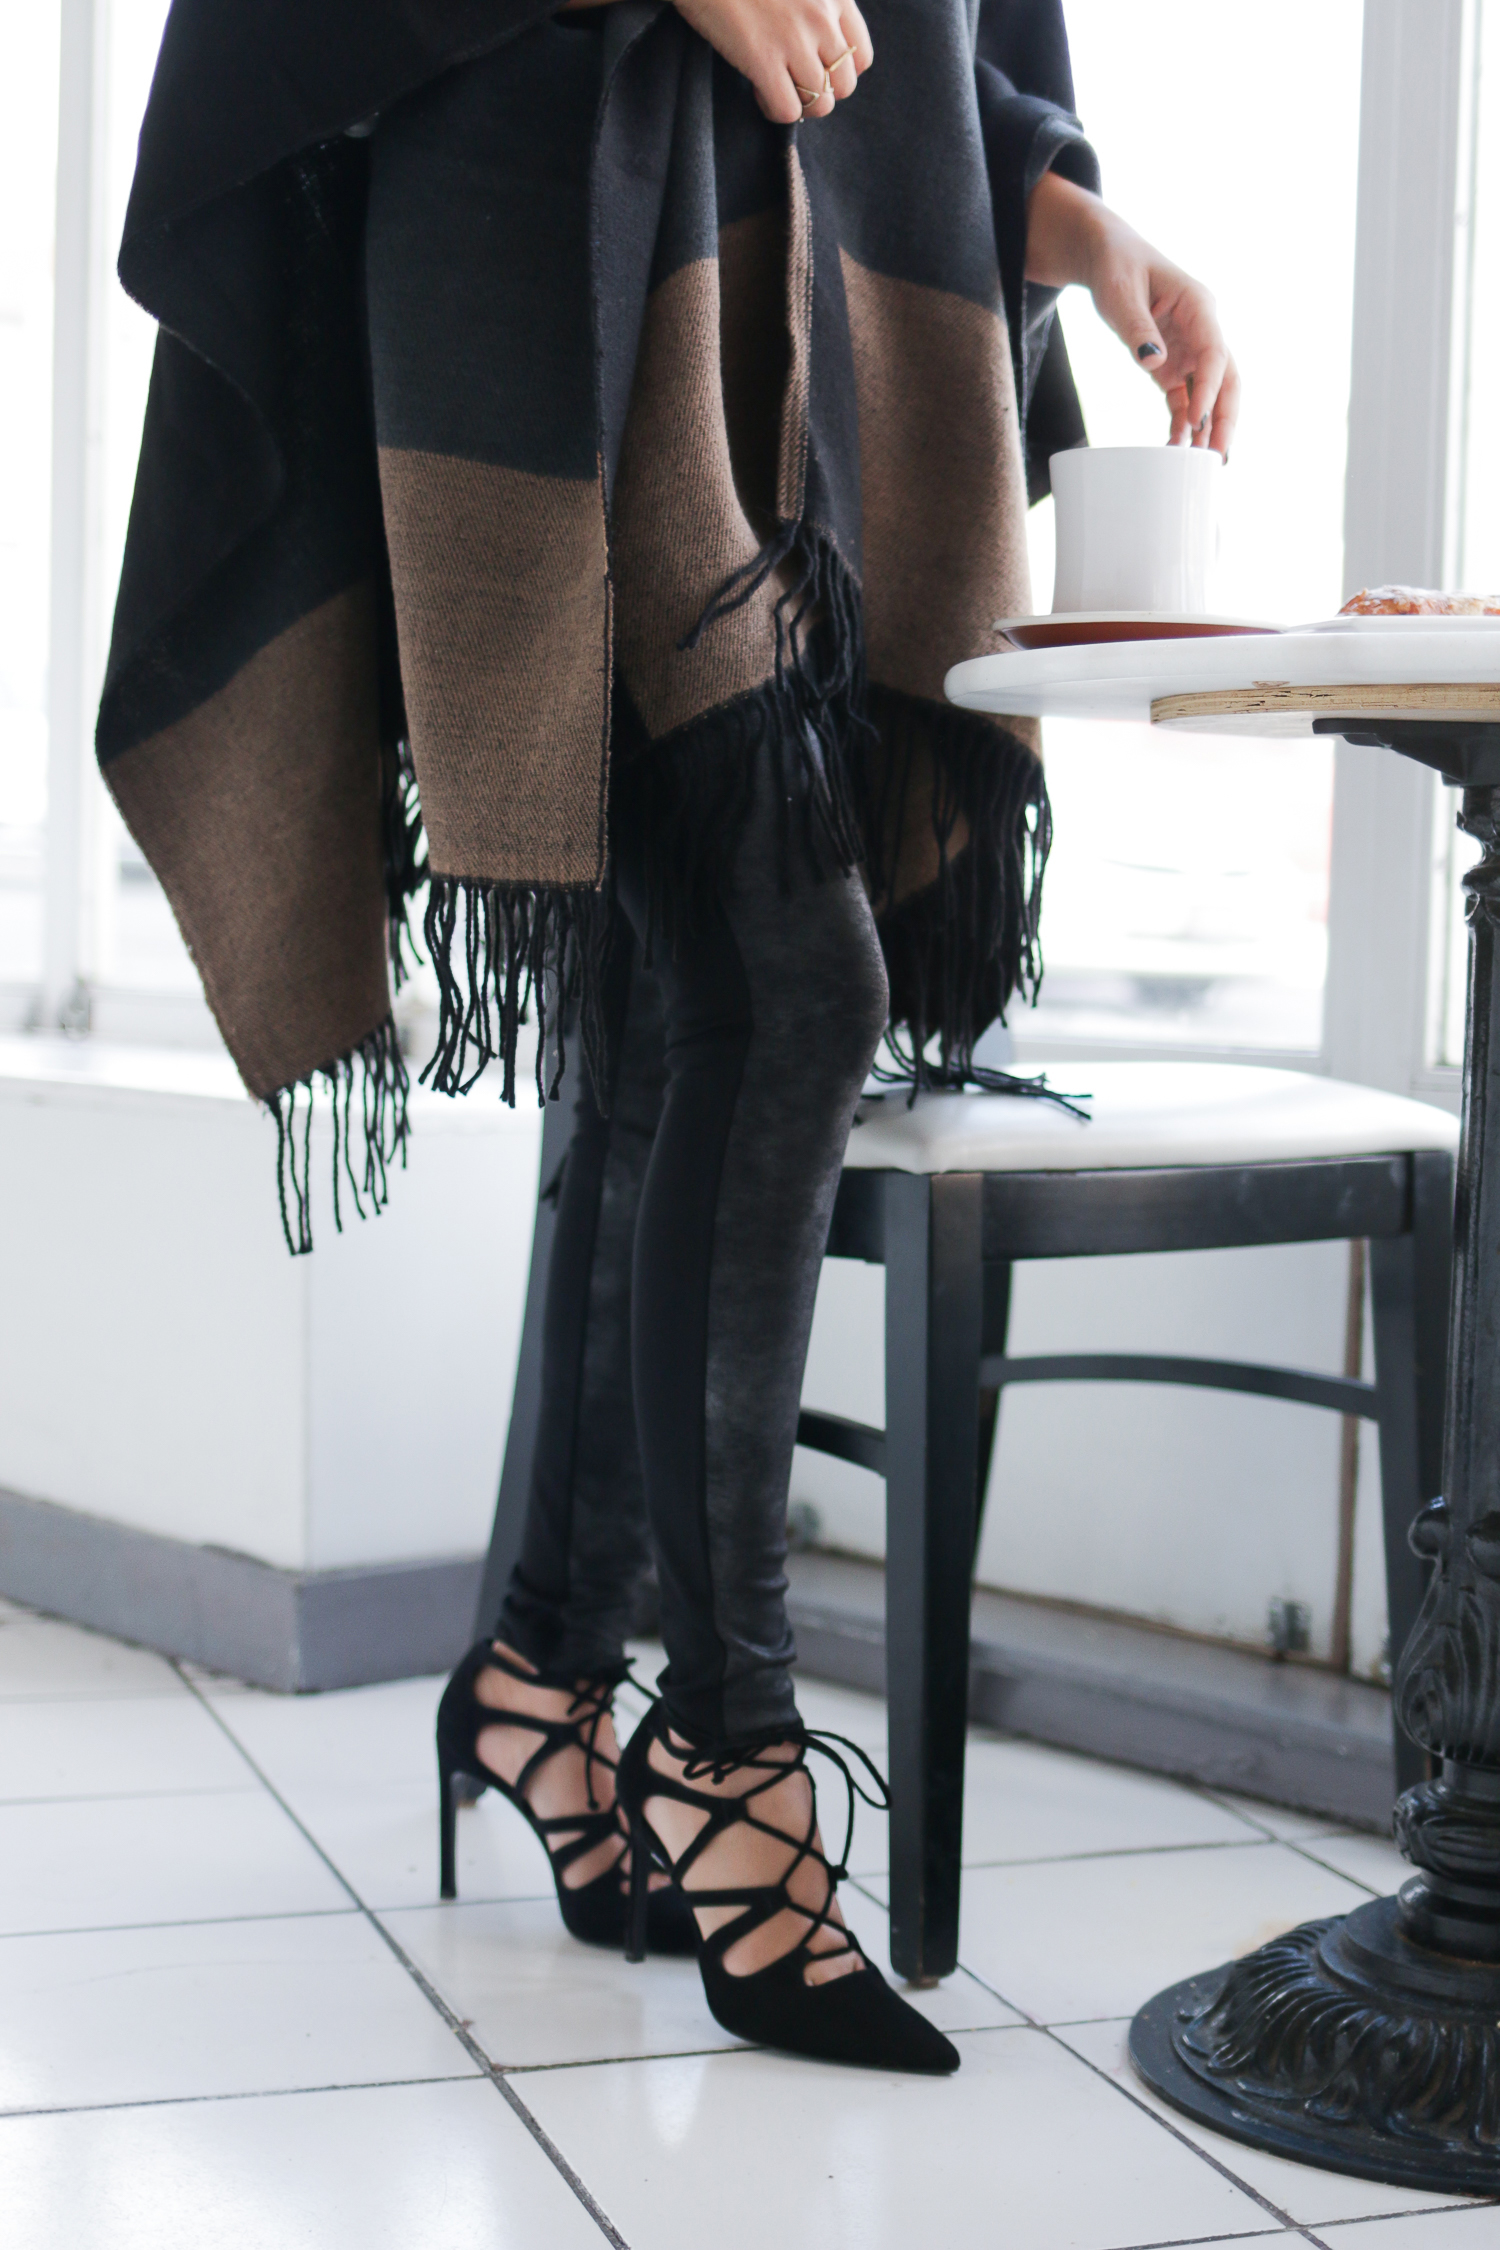 Fringe Ponch, Lace Up Pumps, Faux Leather Leggings